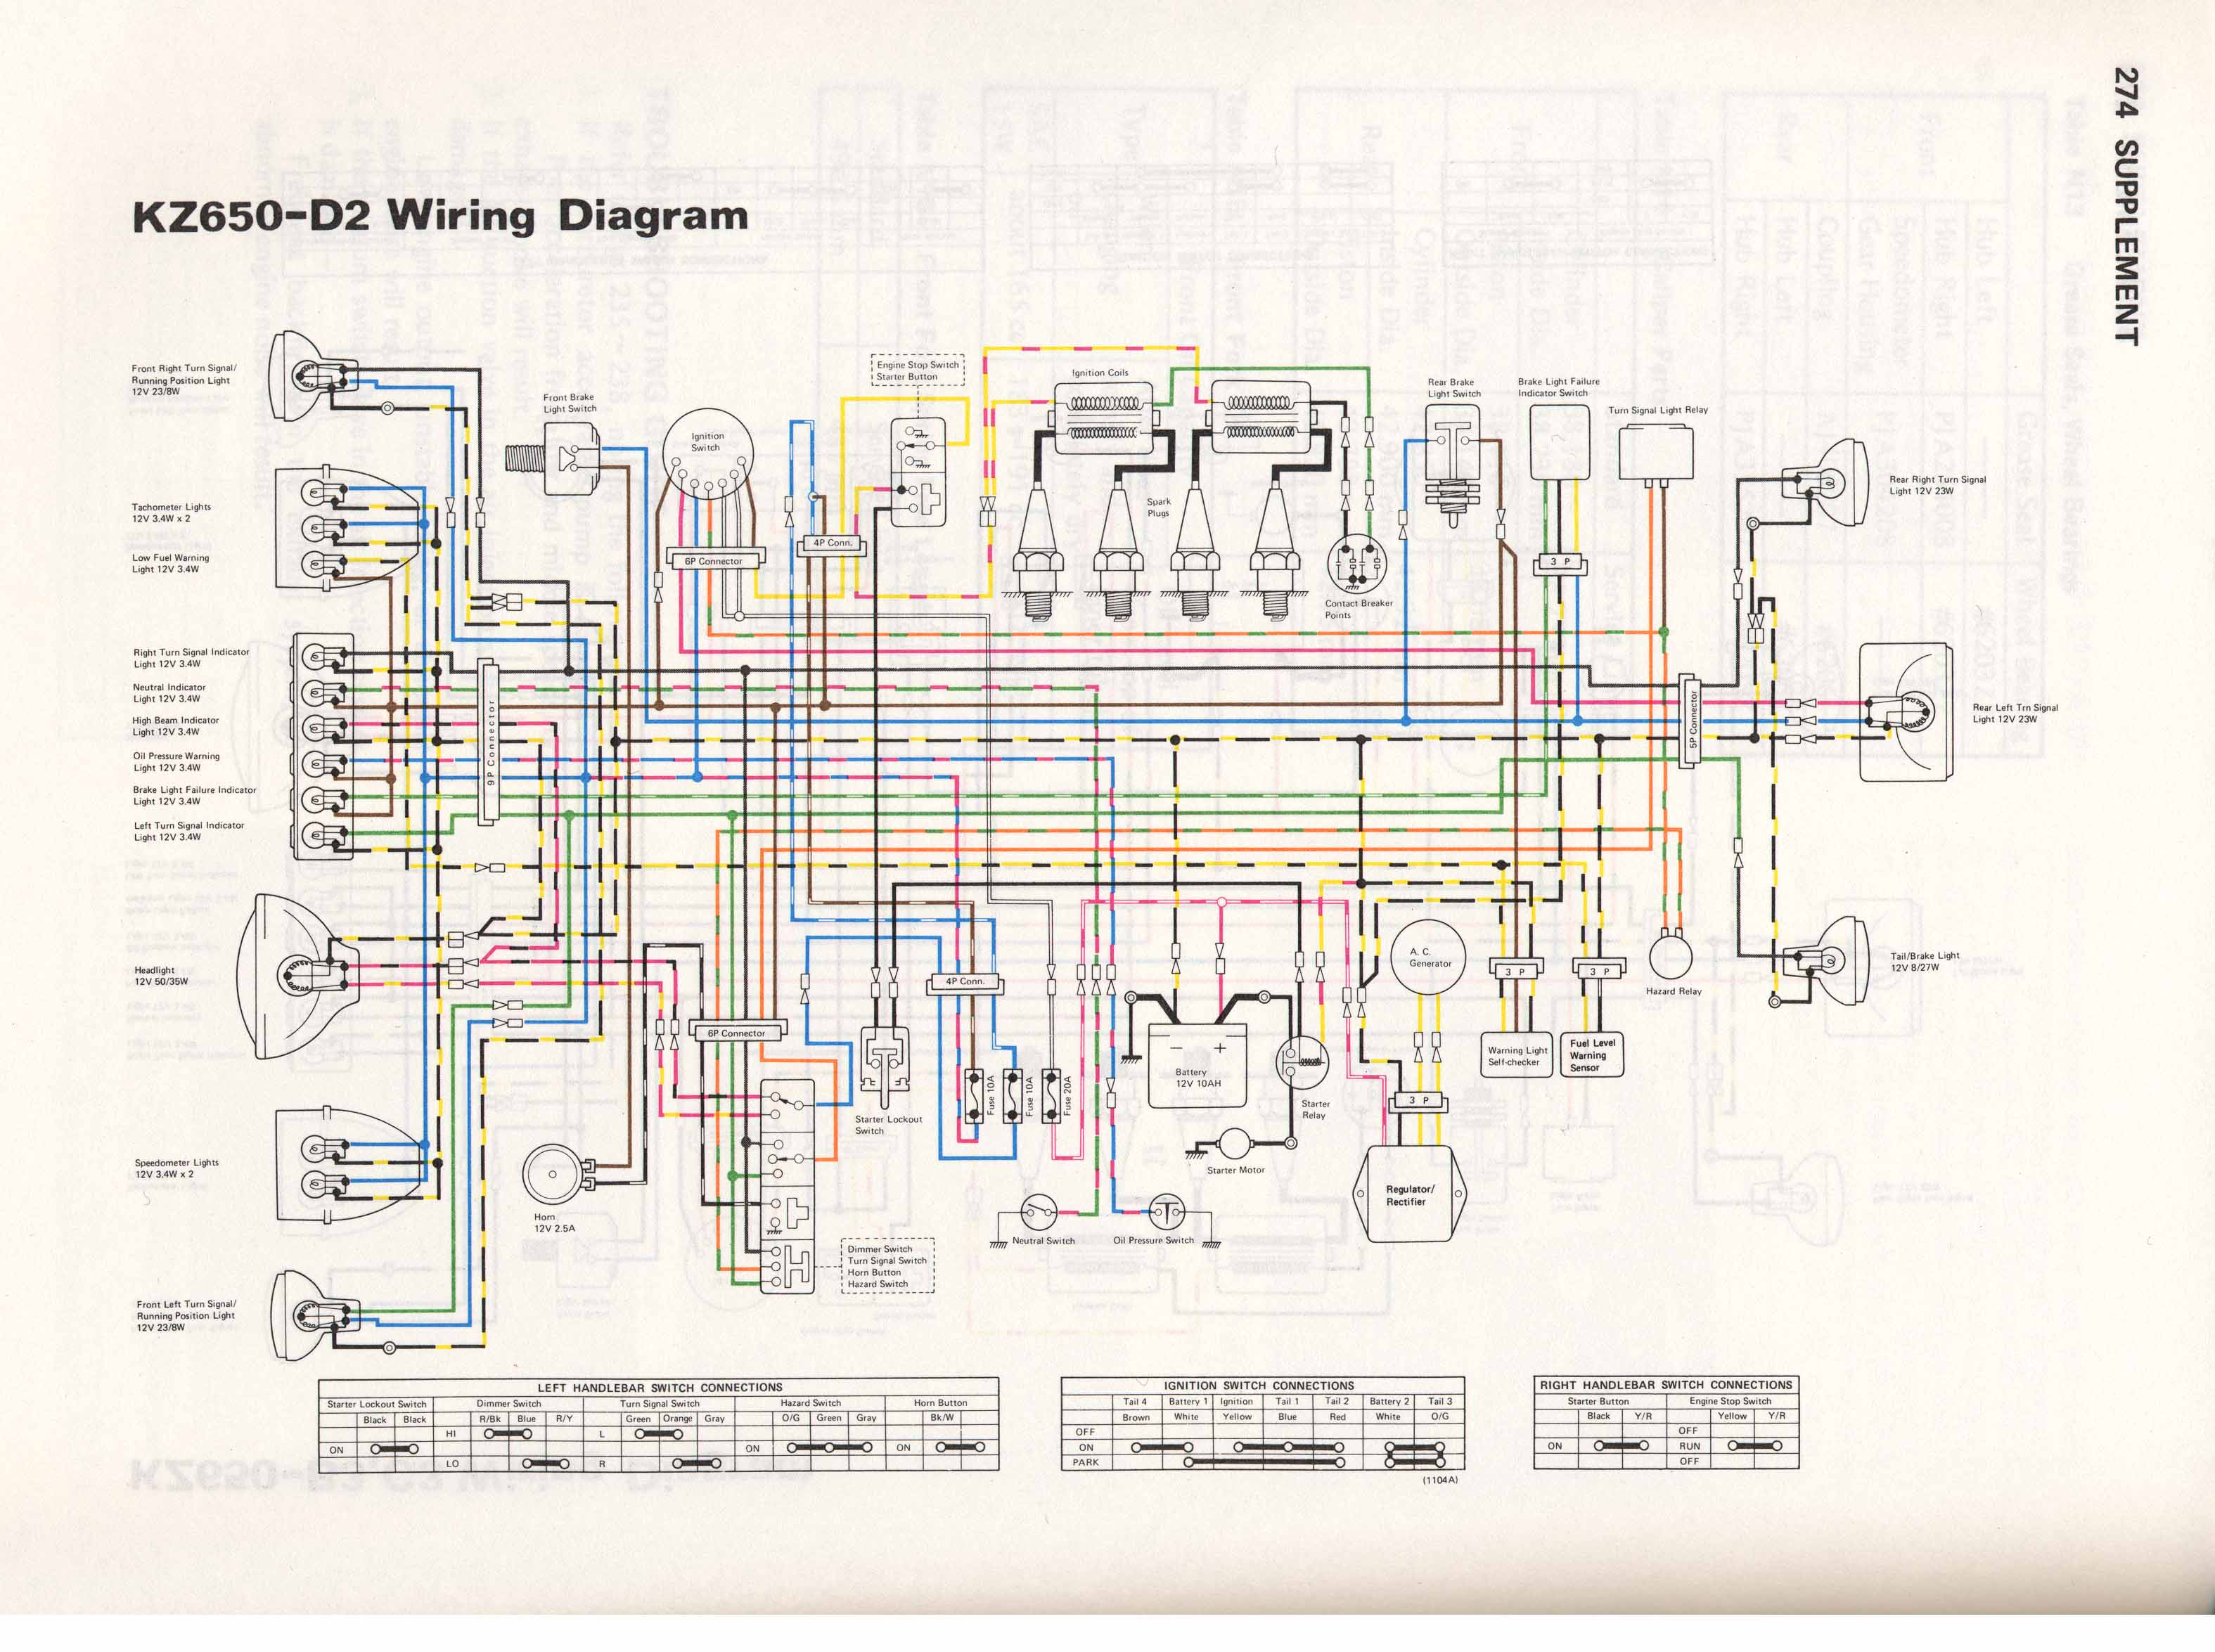 Kawasaki Ninja Wiring Harness Routing Golden Schematic Rover 220 Diagram Kz650 D2